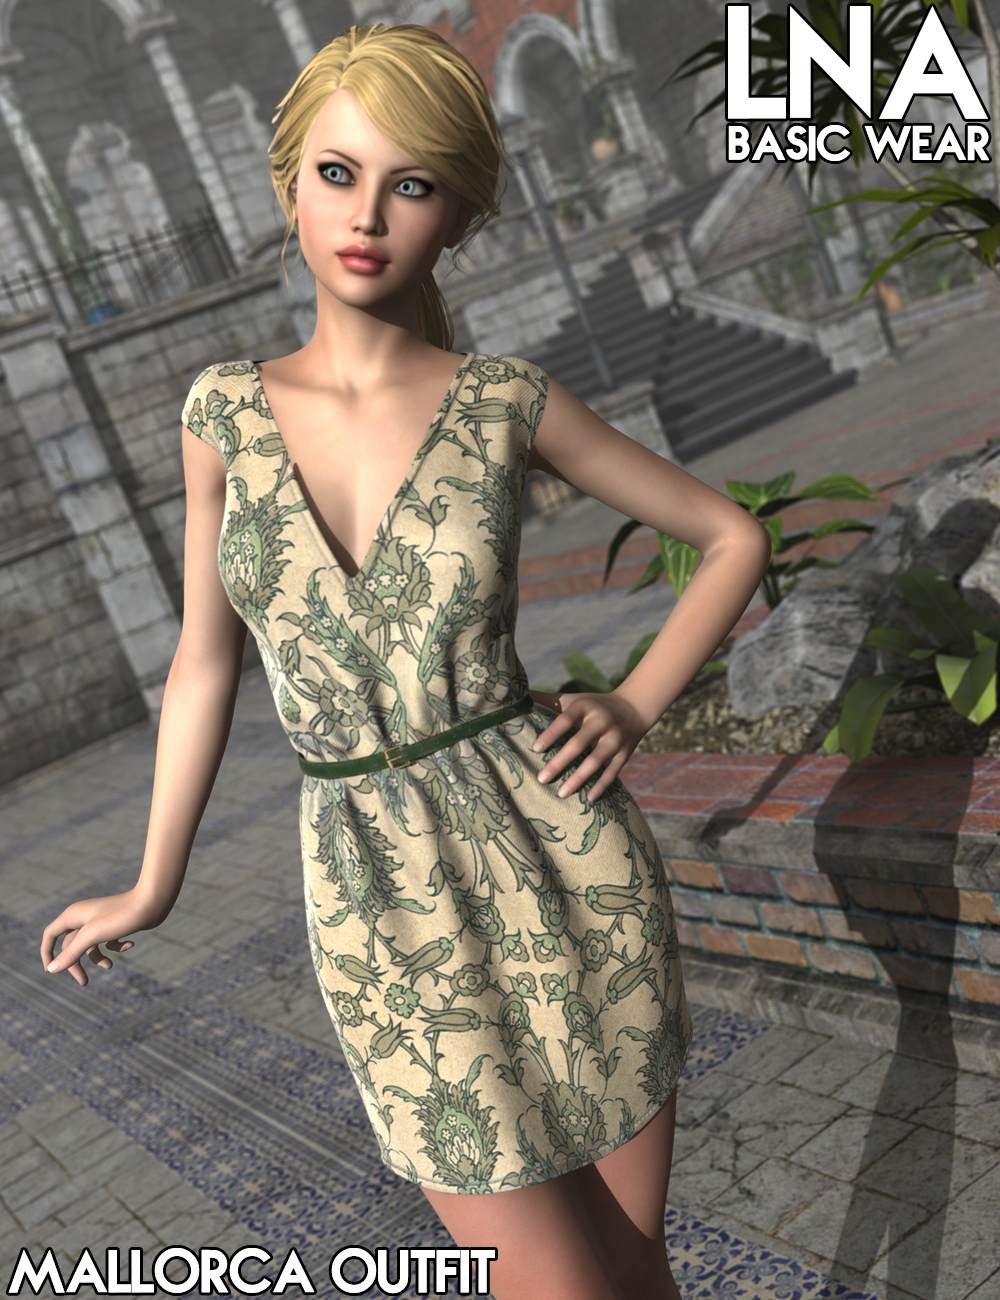 LNA Basic Wear Mallorca Outfit by: Luthbellina, 3D Models by Daz 3D